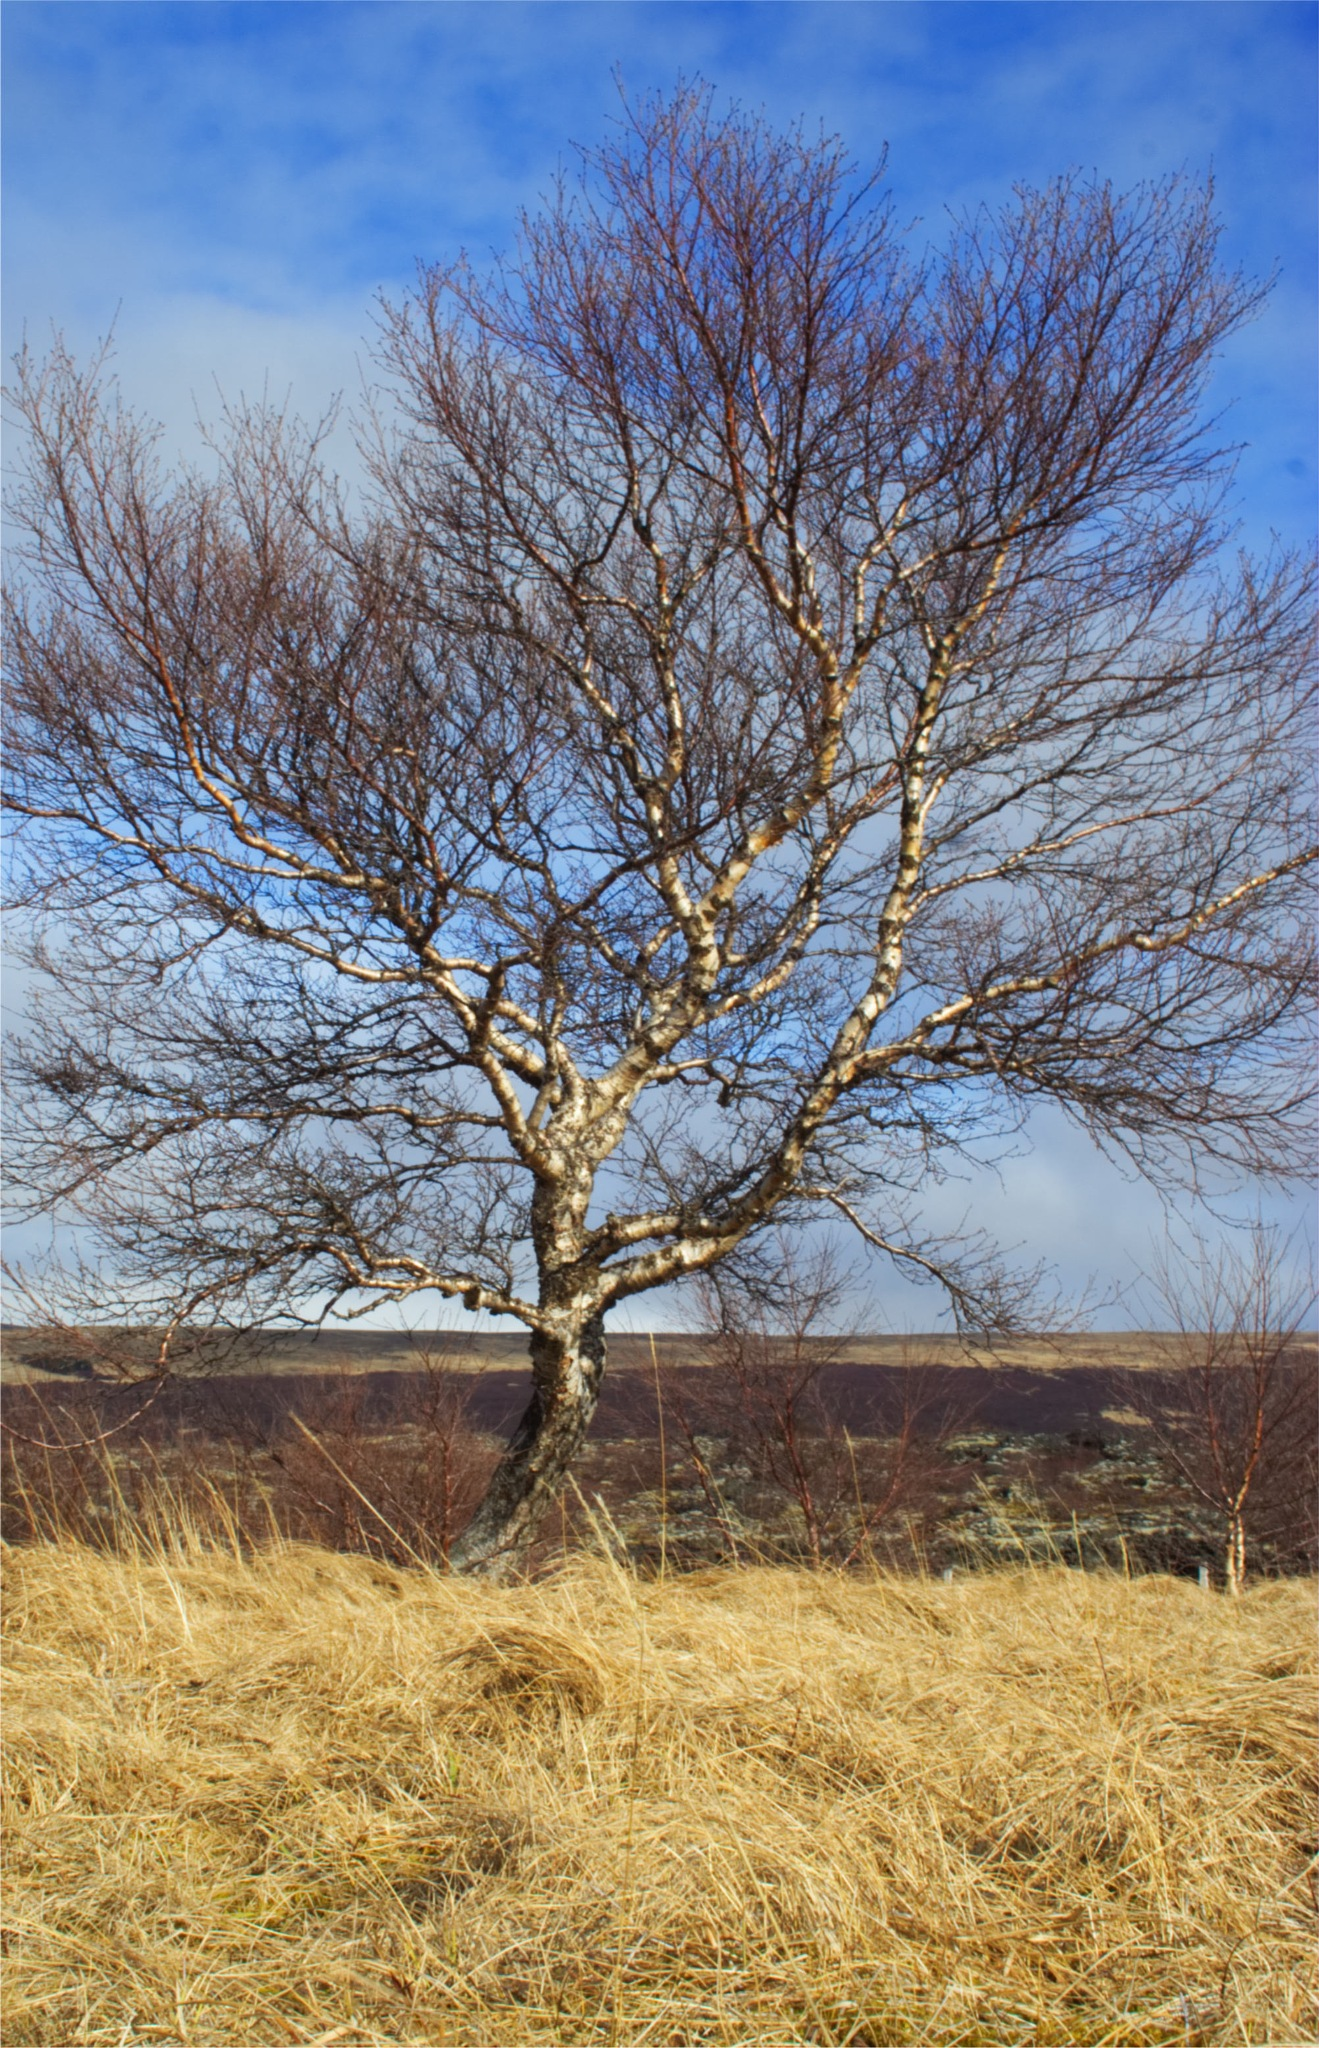 Our Icelandic independence as a tree by Dadi Gudbjornsson